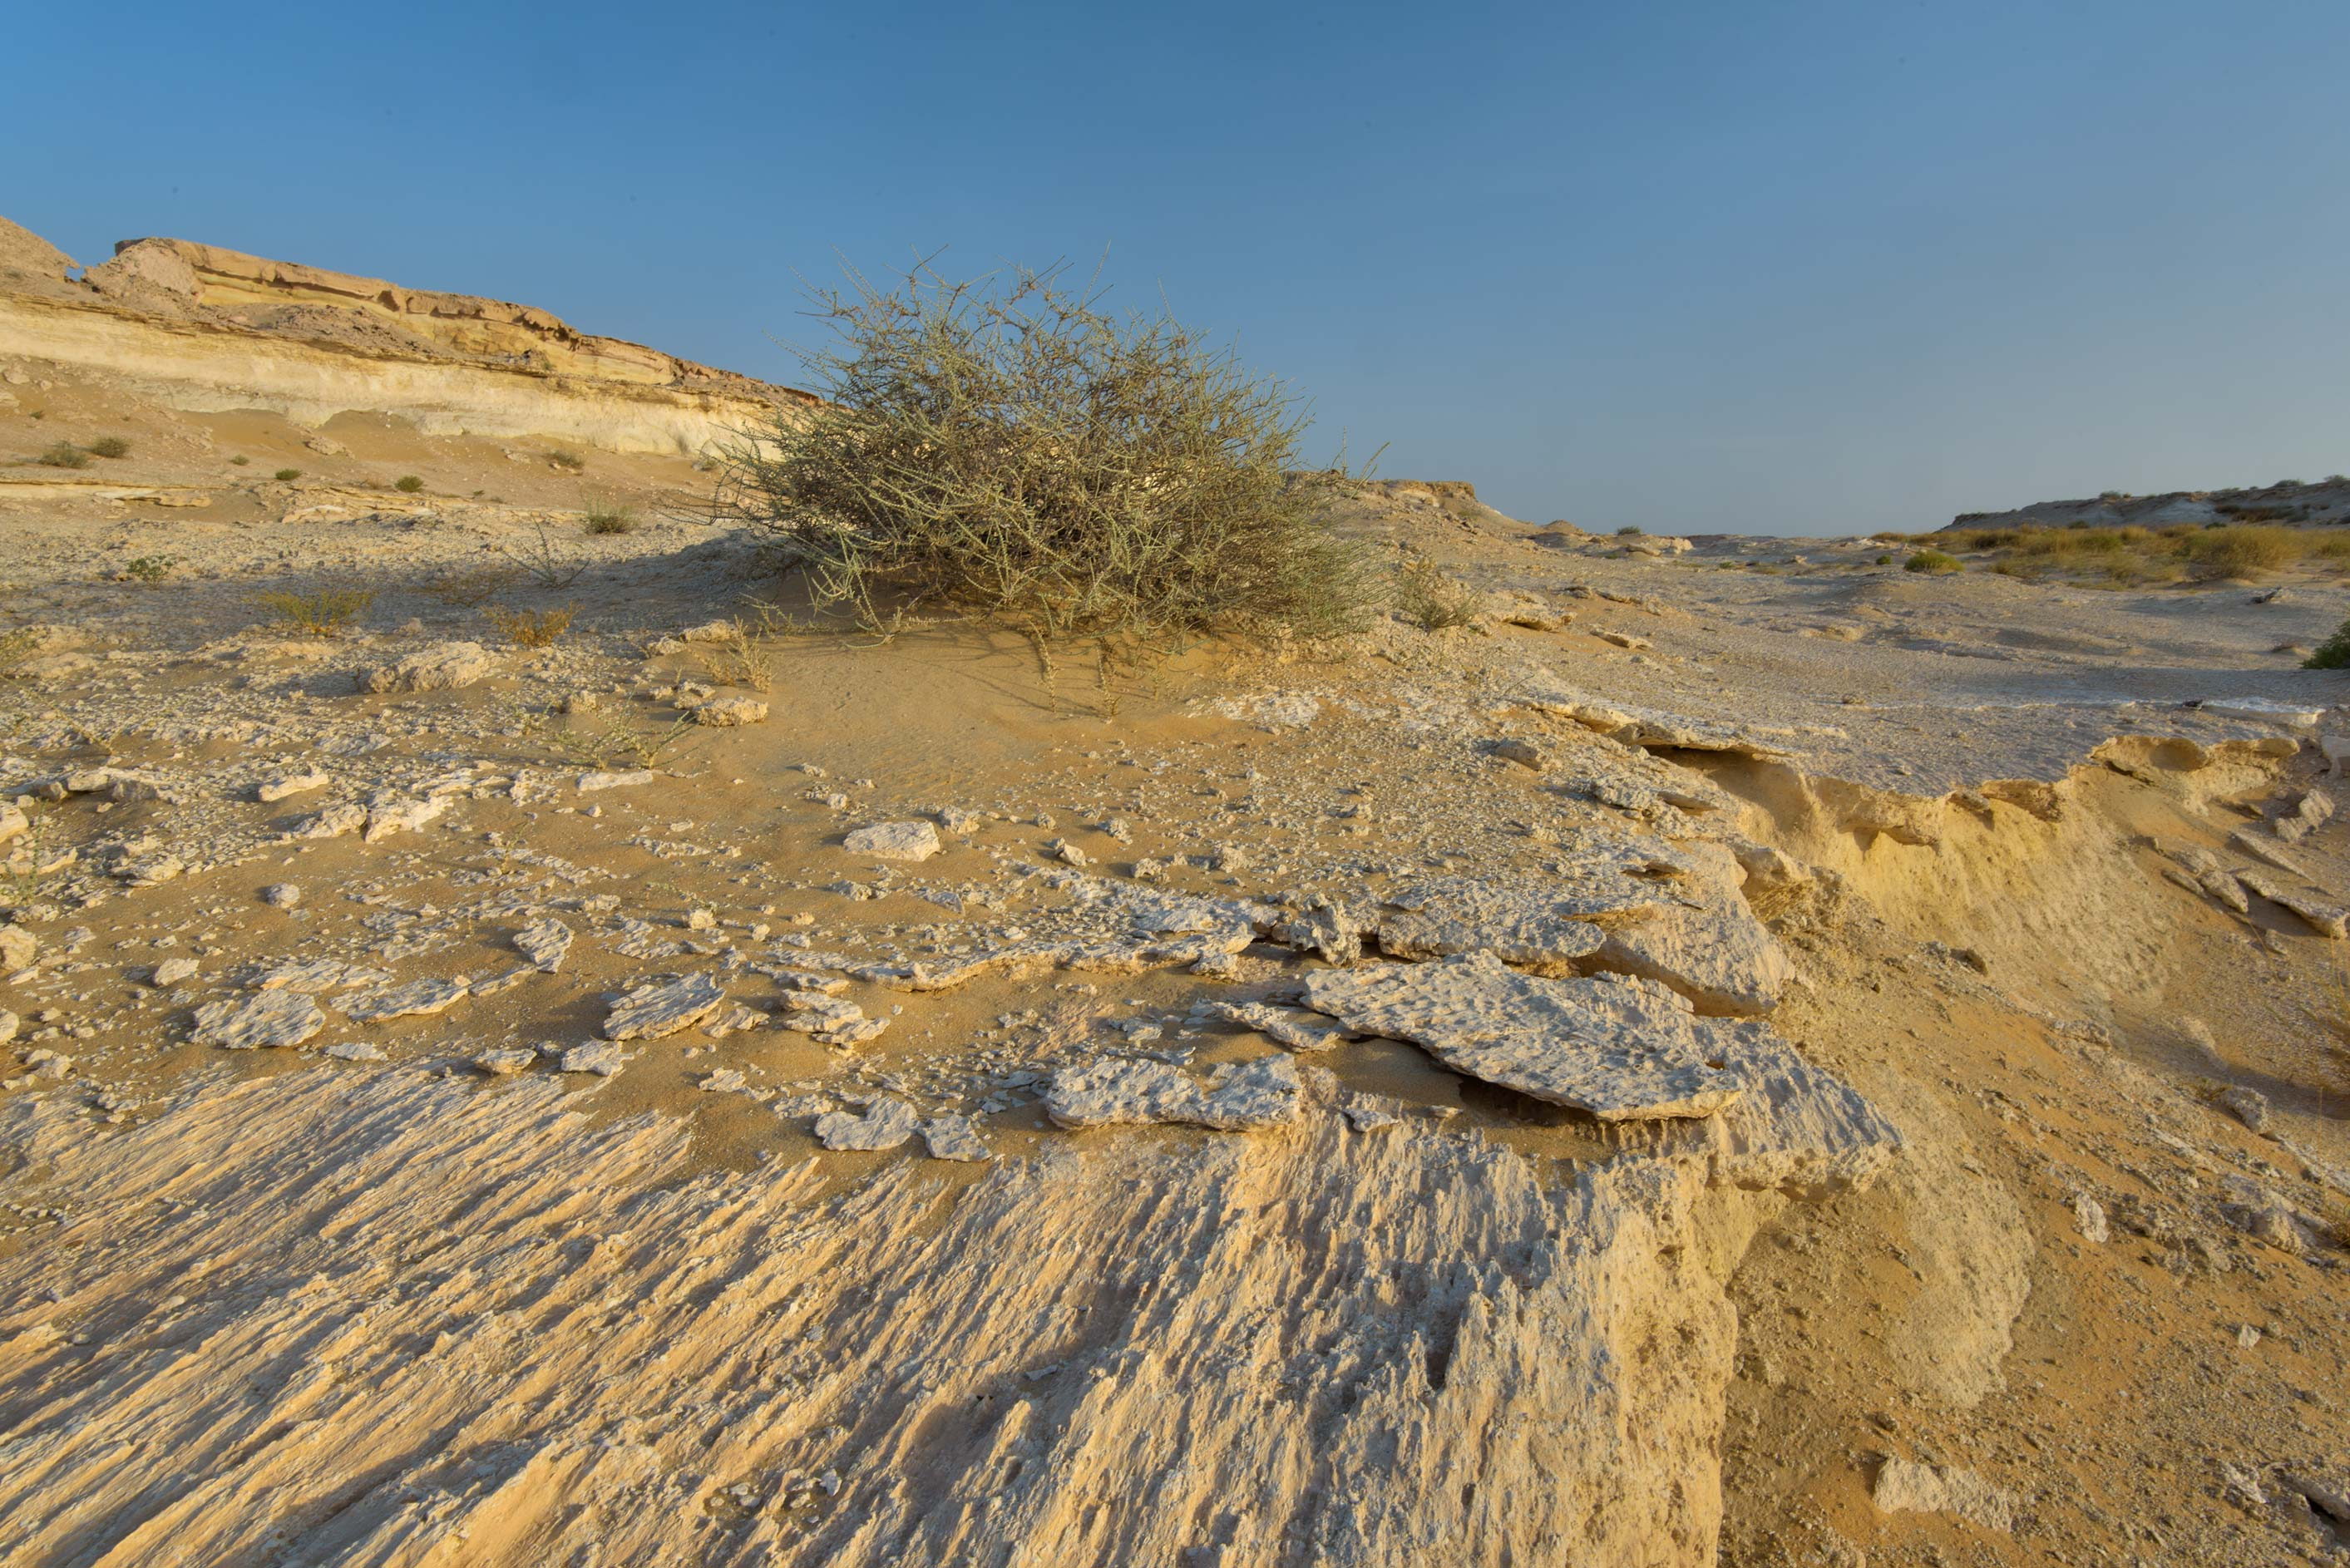 Bush of Salsola cyclophylla on limestone rocks in...Reserve near Abu Samra. Southern Qatar